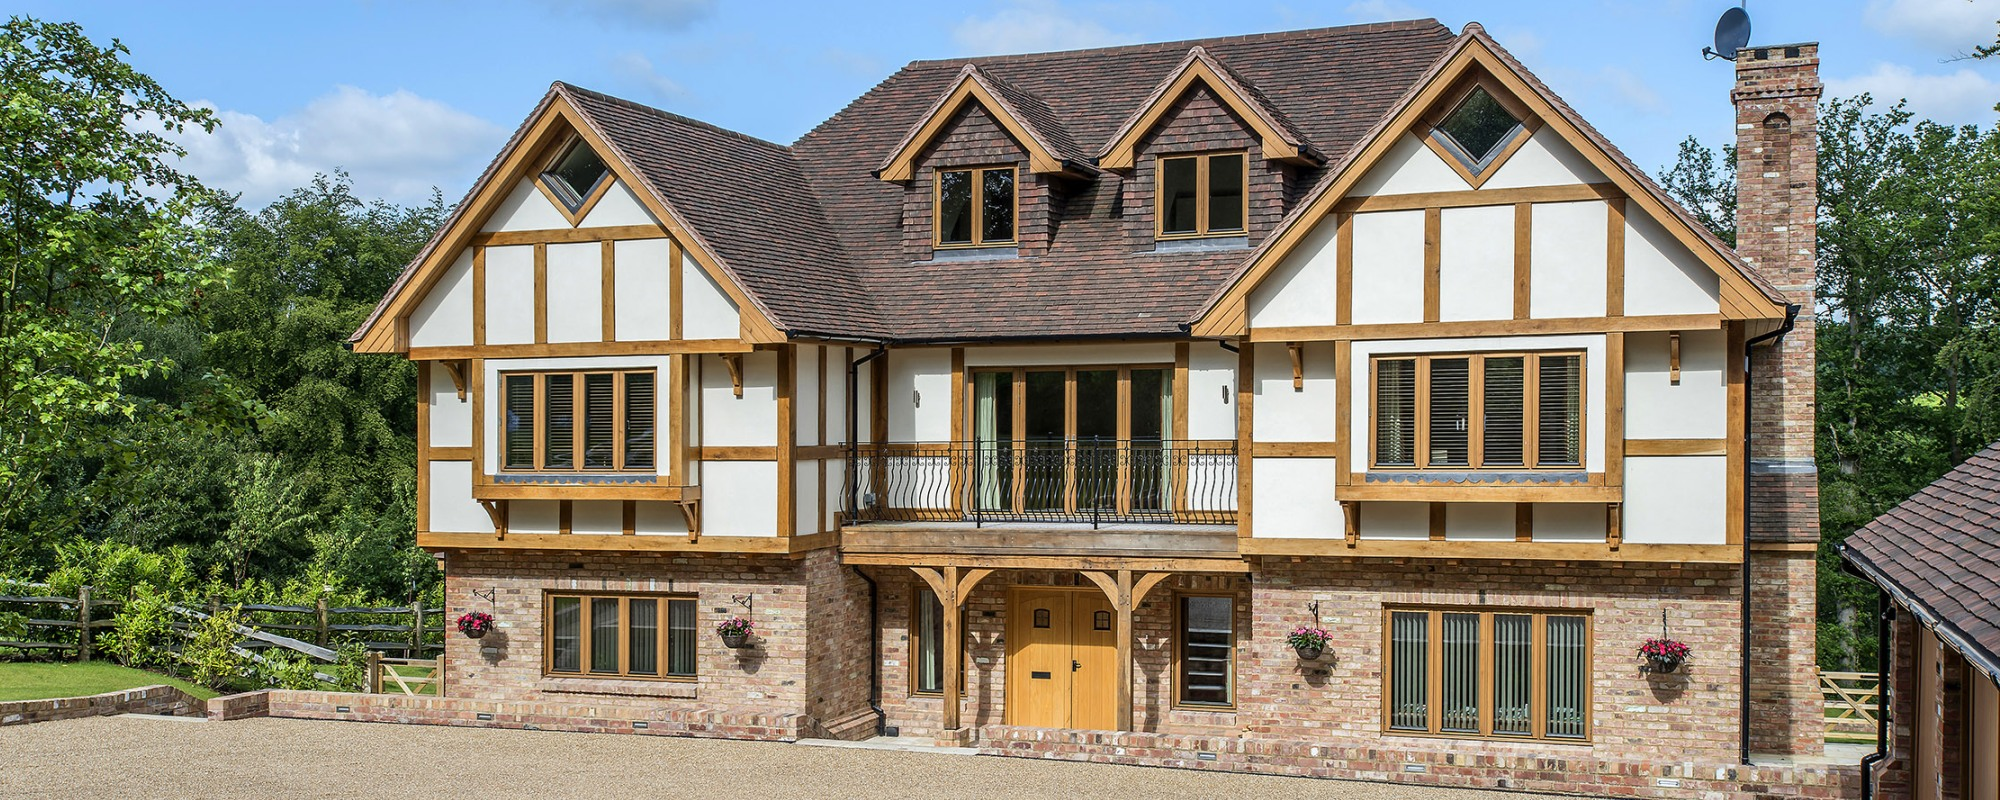 Tudor Inspired Architecture